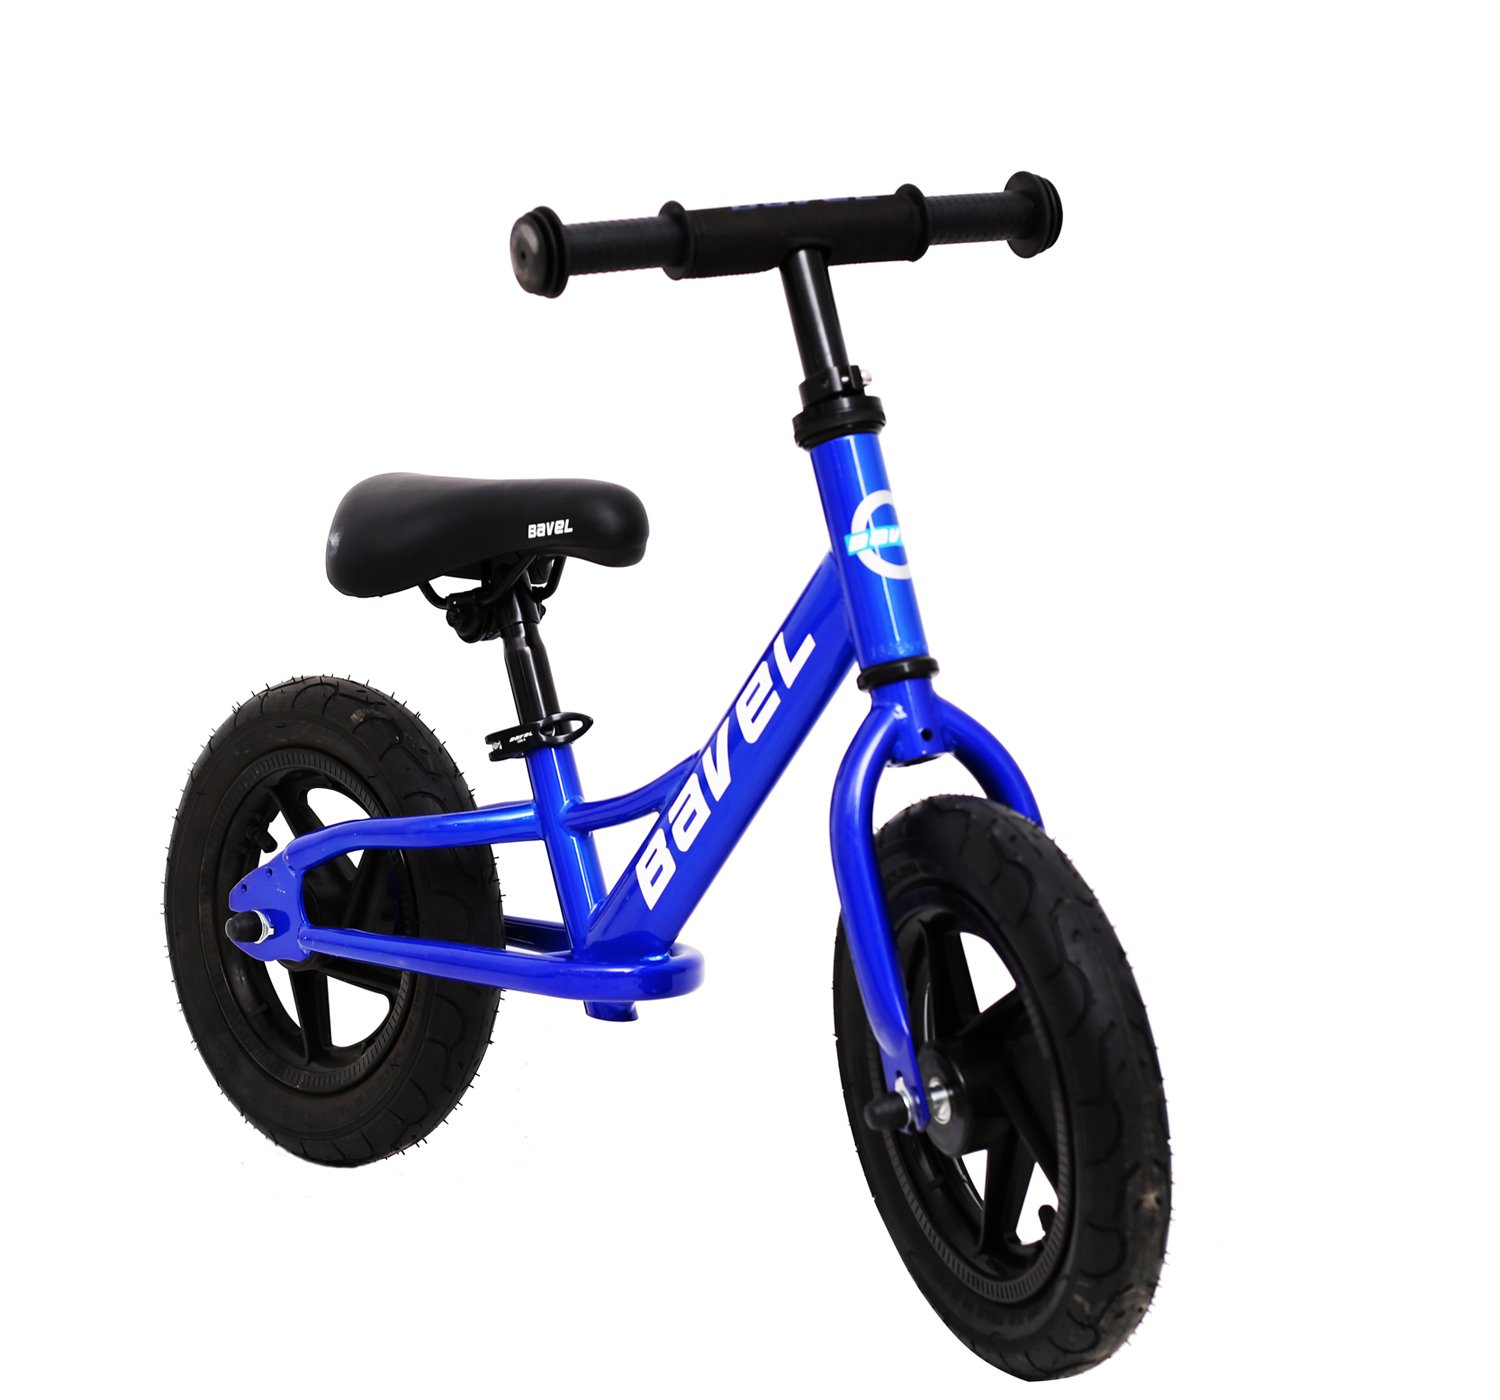 Bavel Balance Bike 12-Inch For Ages 18 Months to 4 Years (blue, 12'')